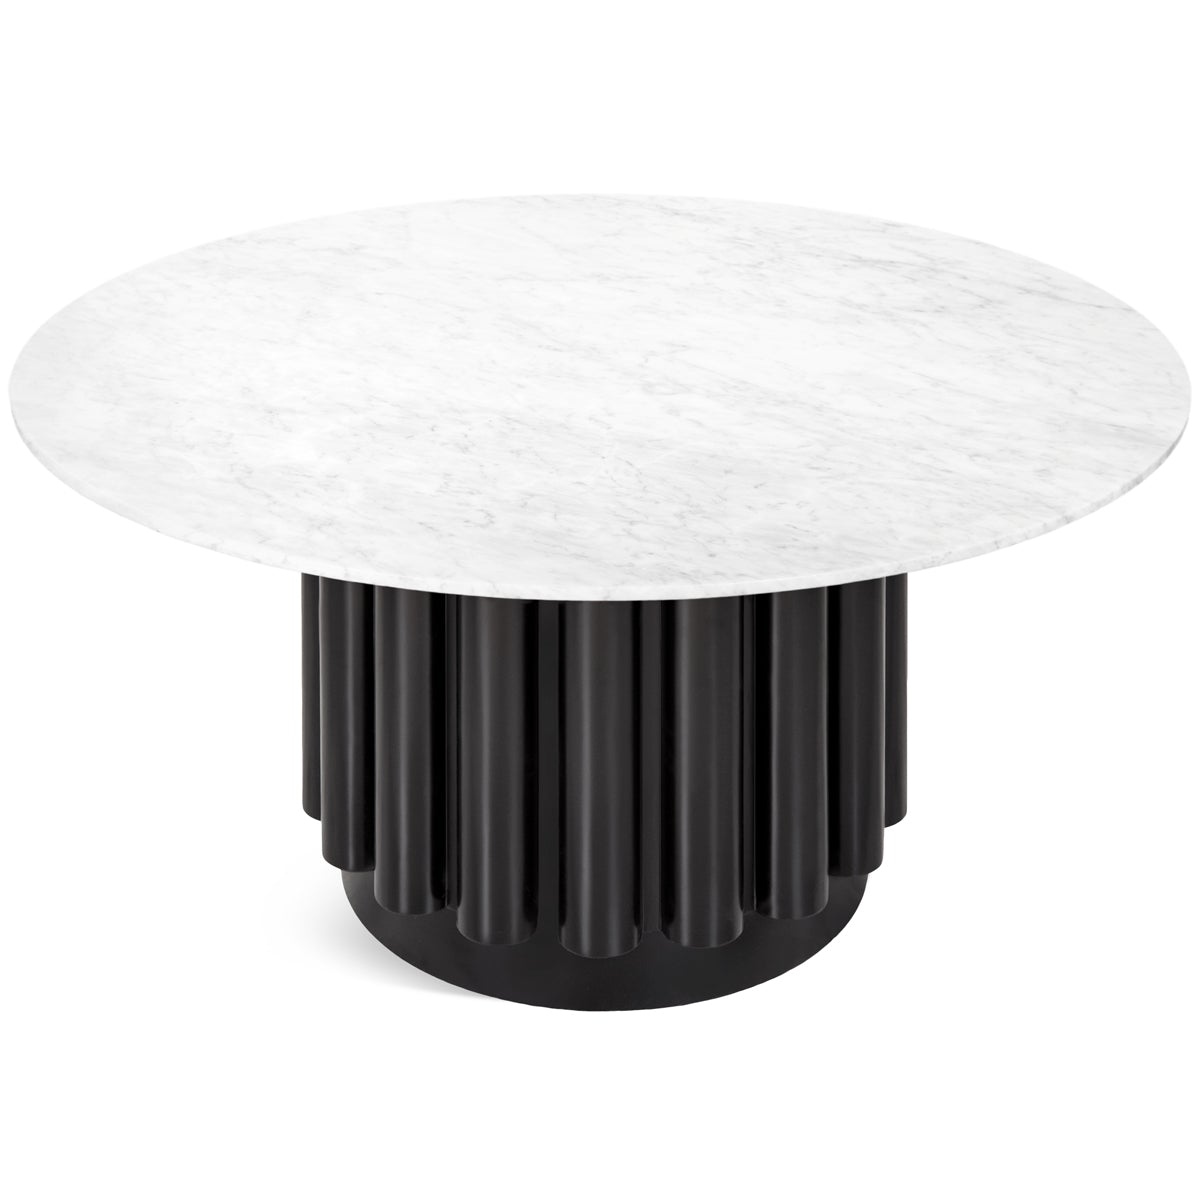 Eden Rock Dining Table - ModShop1.com